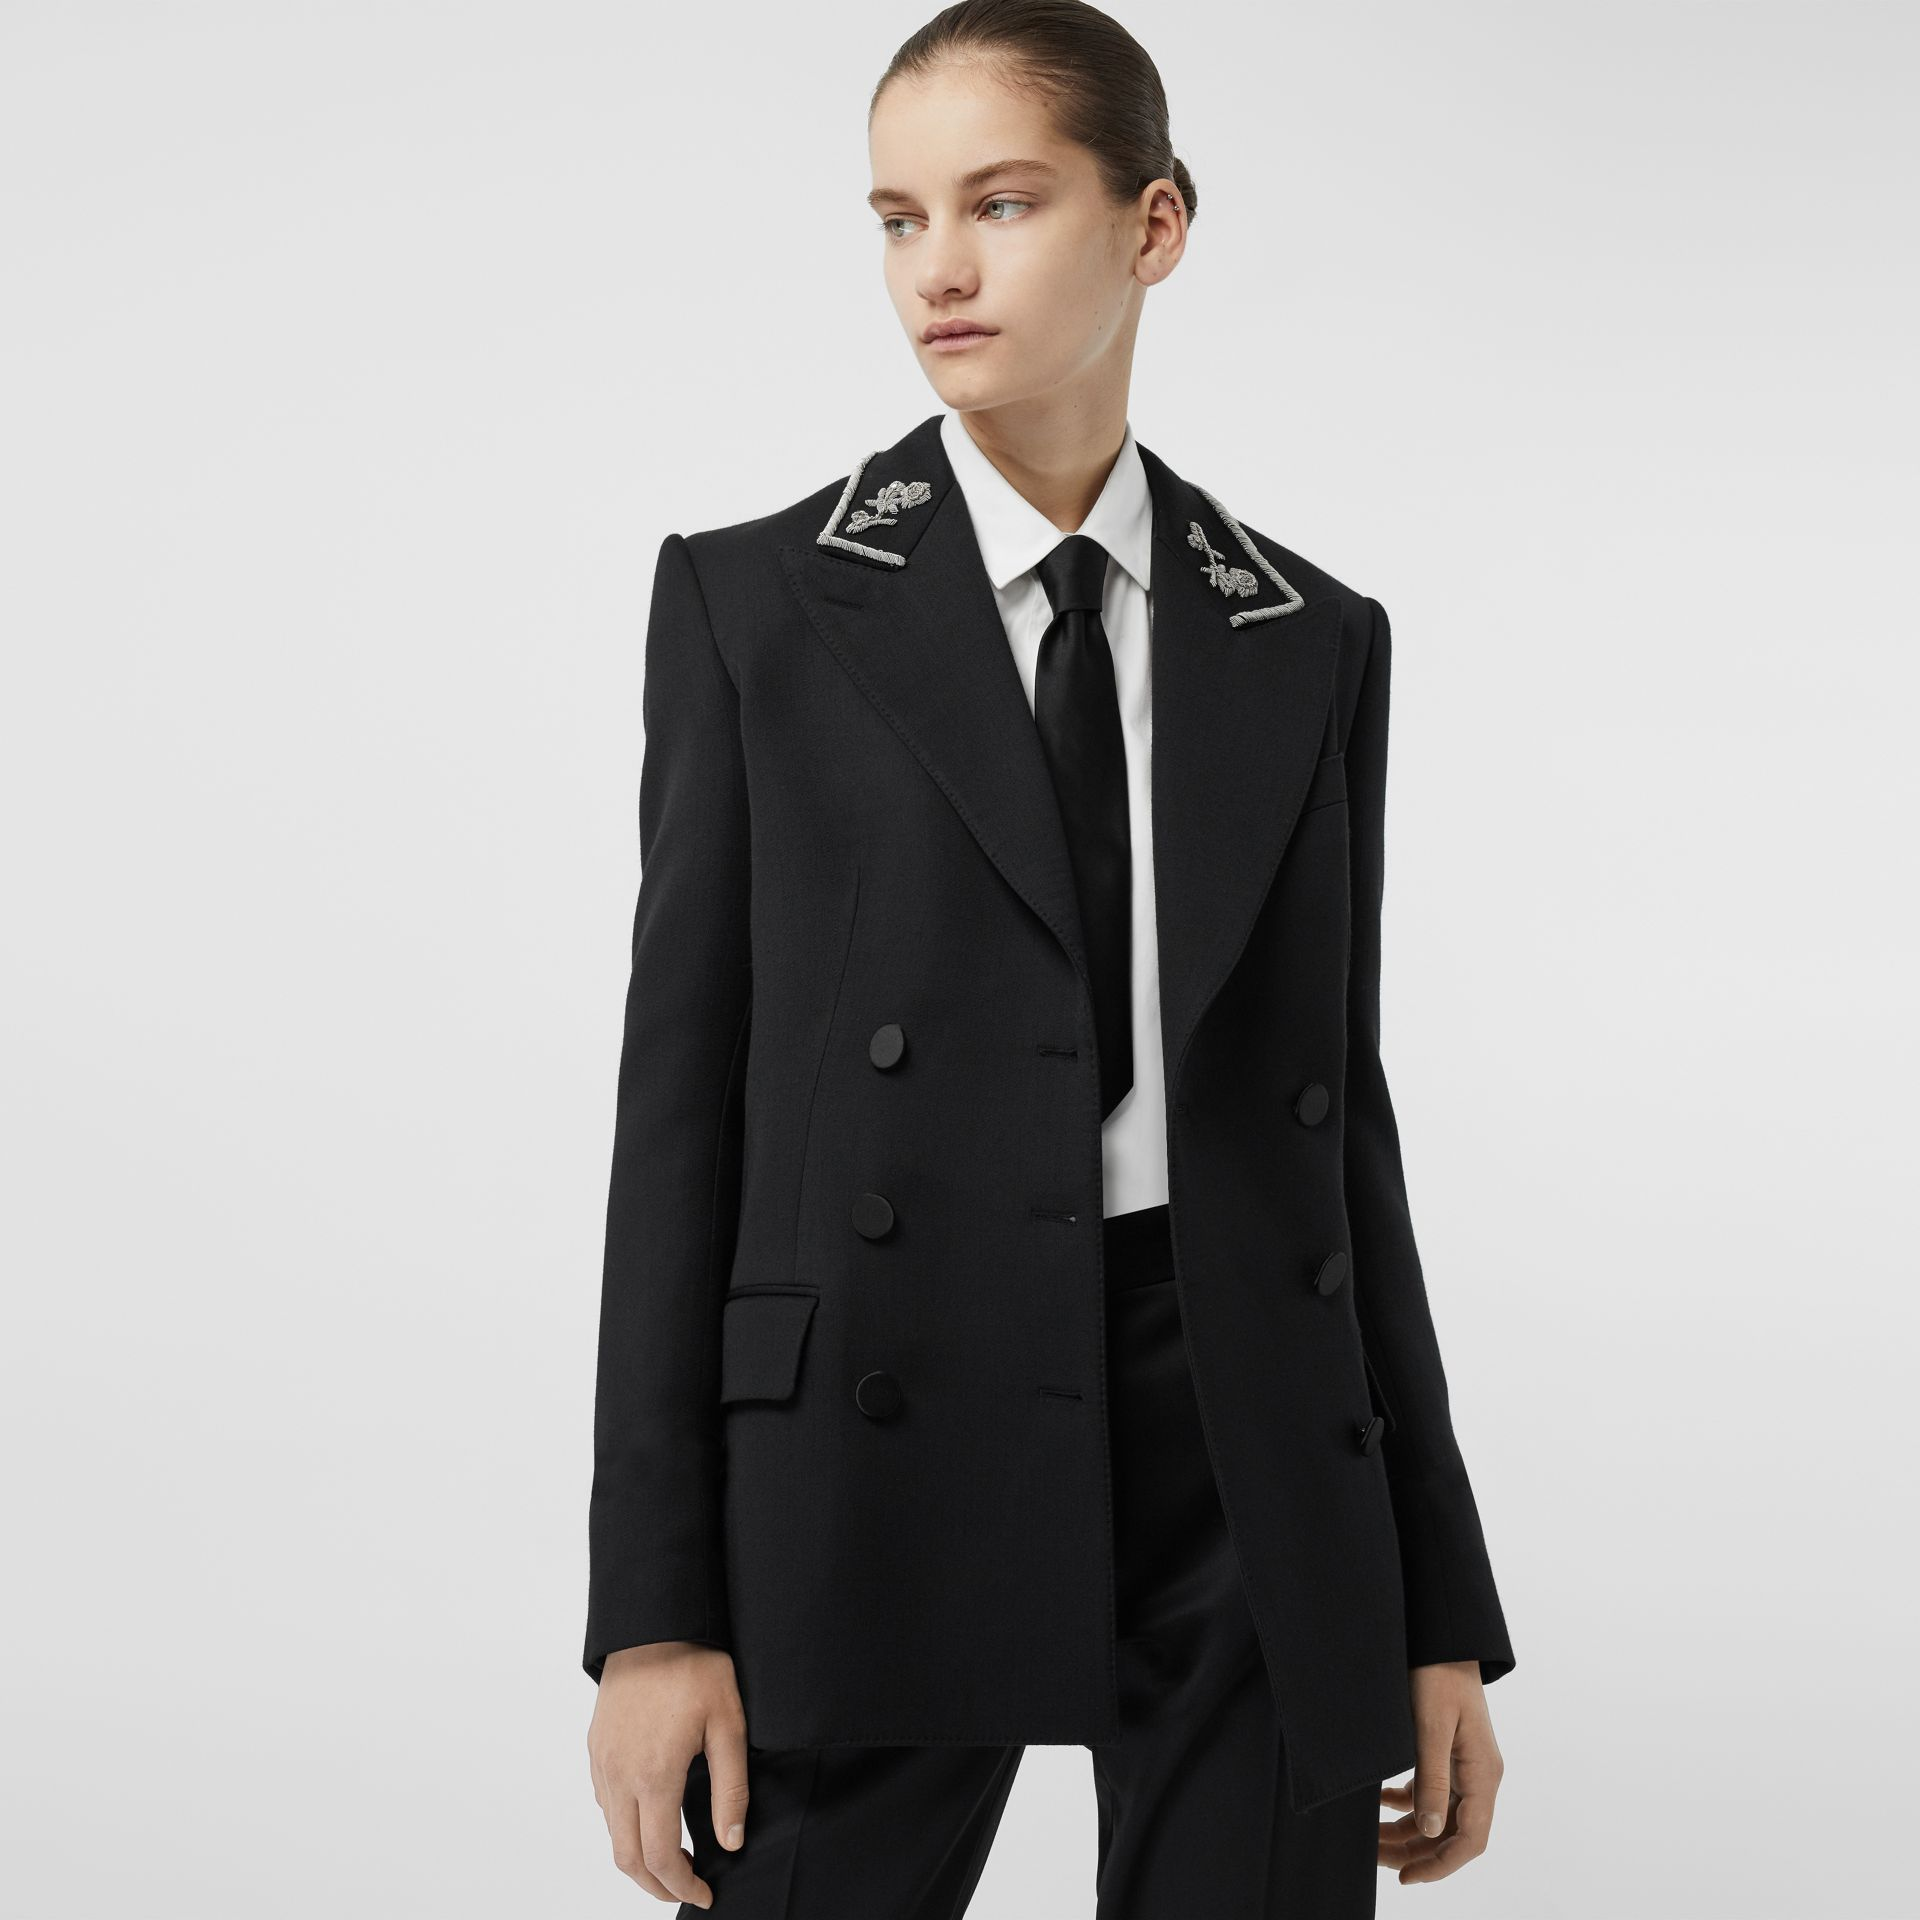 Bullion Stretch Wool Double-breasted Jacket in Black - Women | Burberry United Kingdom - gallery image 4